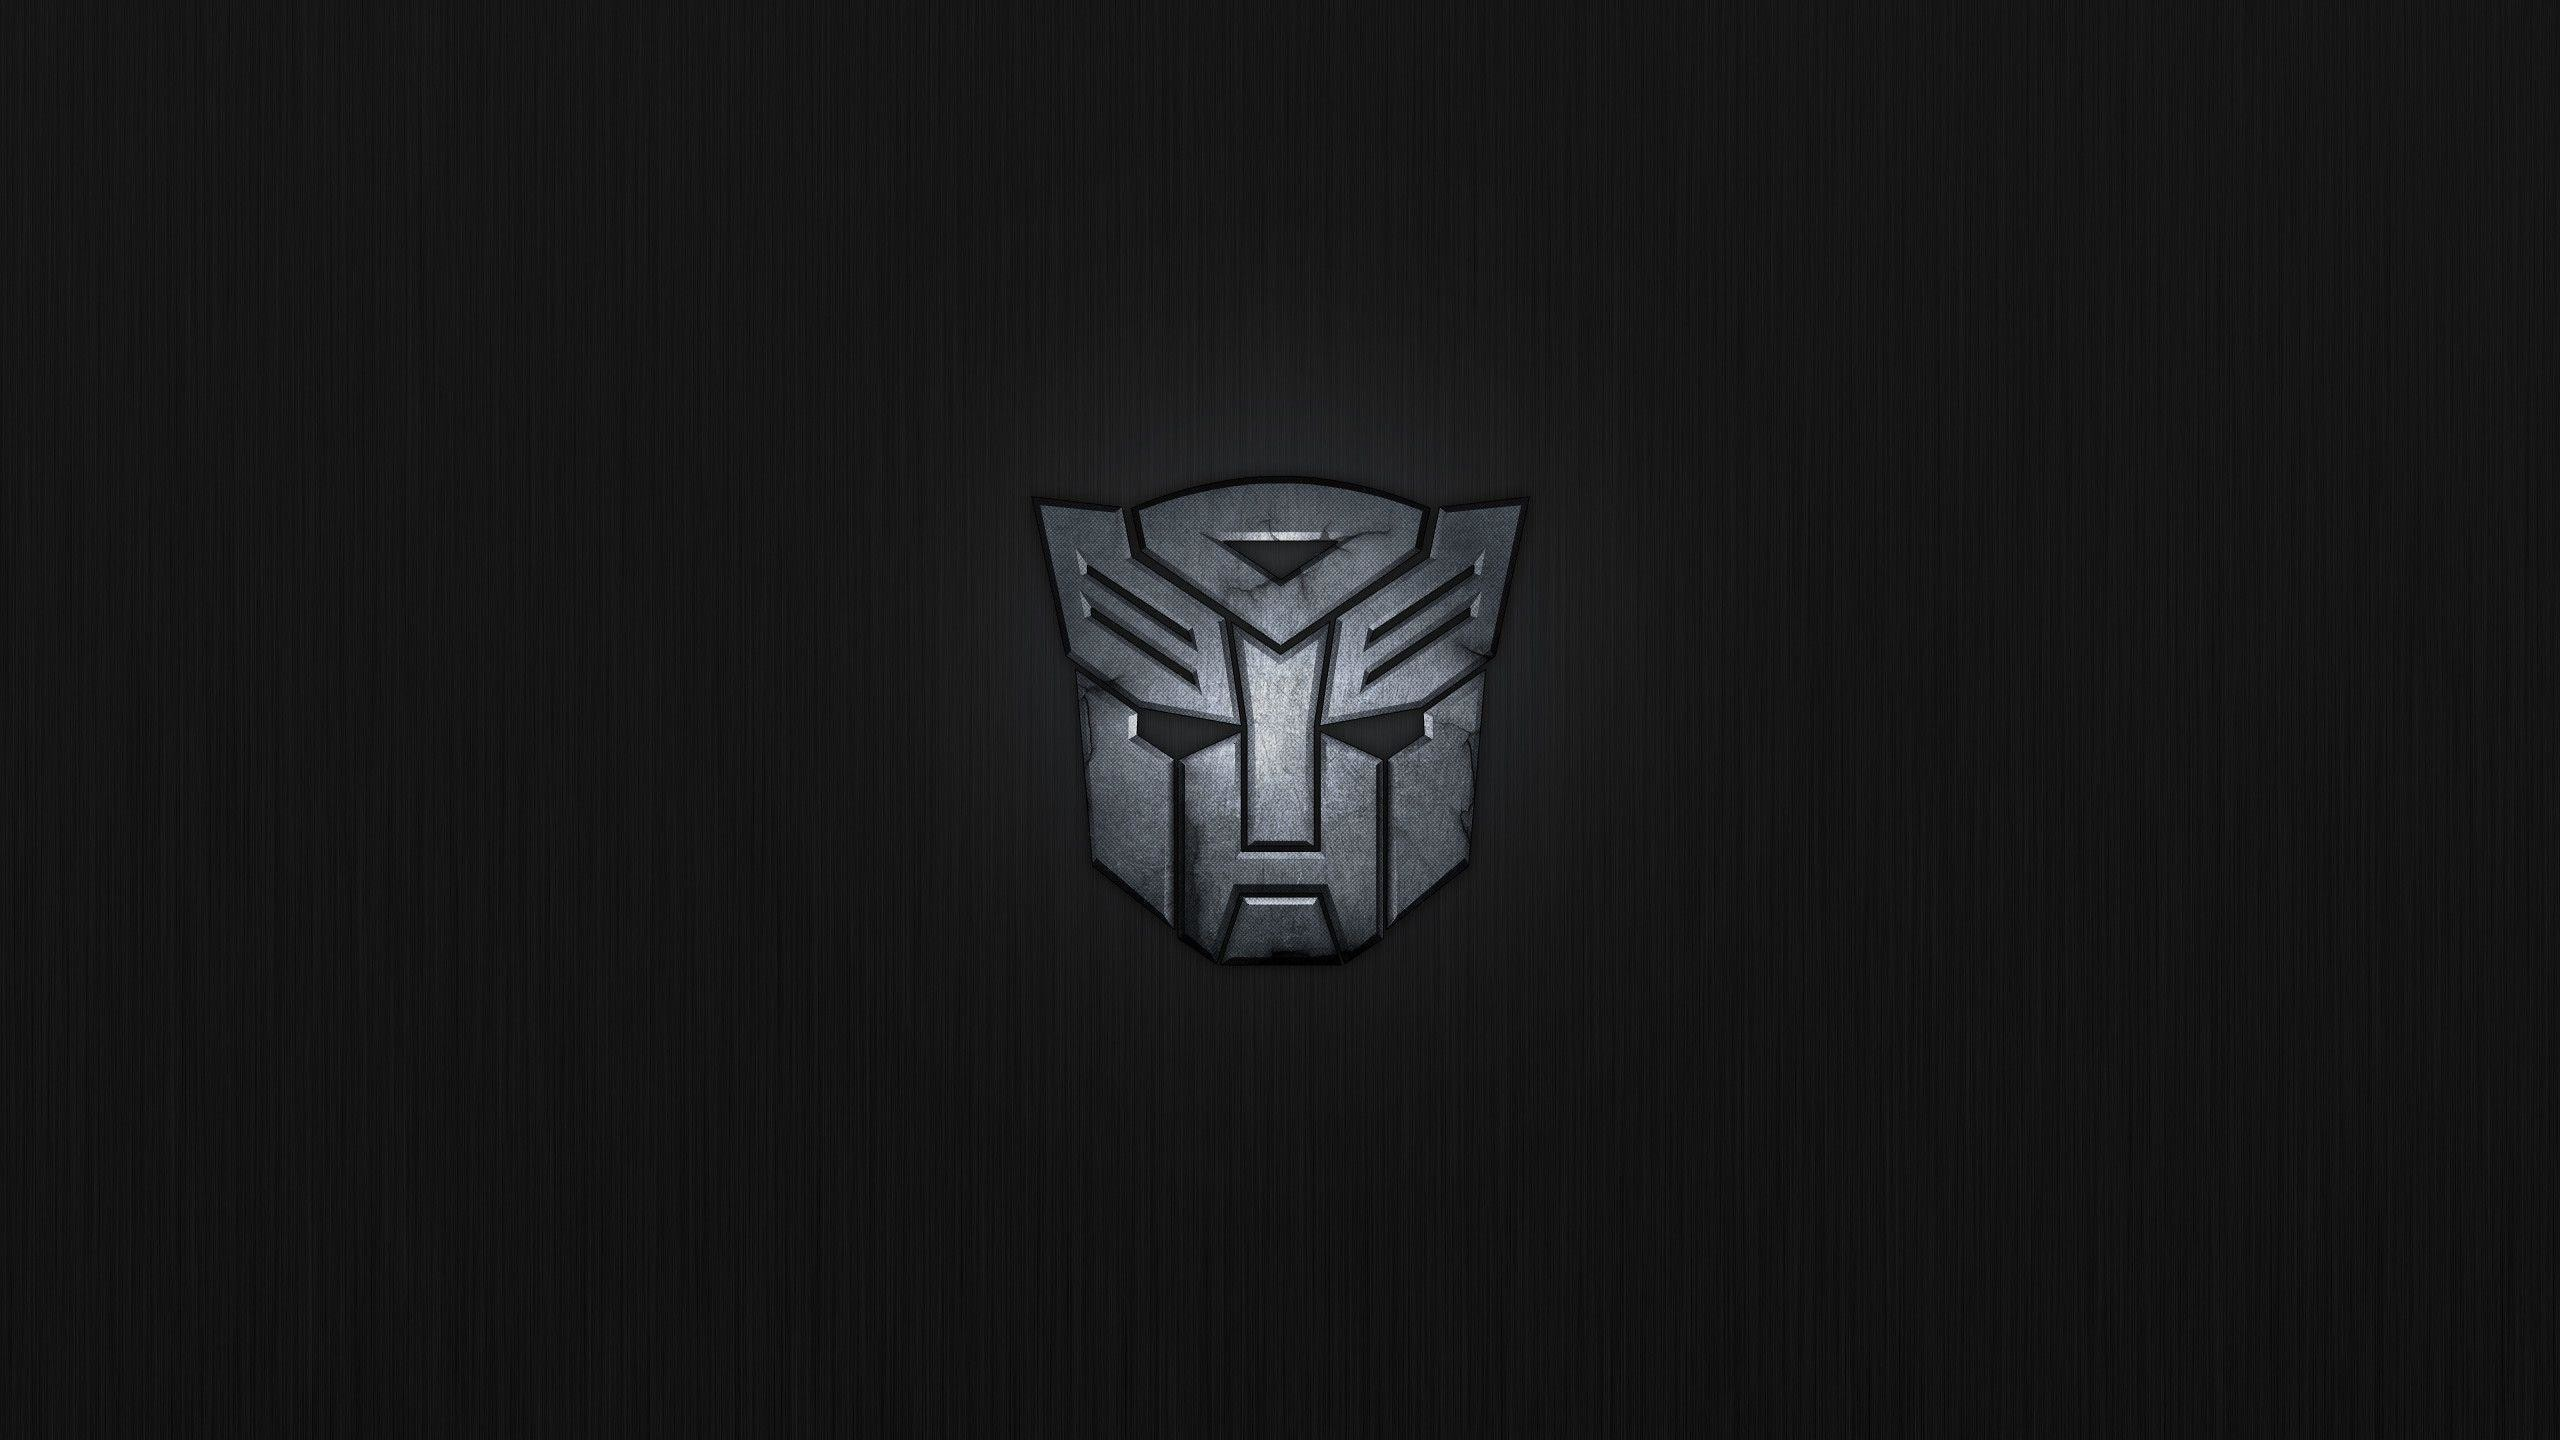 2560x1440 Download Free Transformers Autobot And Decepticon Logo 6 Wallpaper .